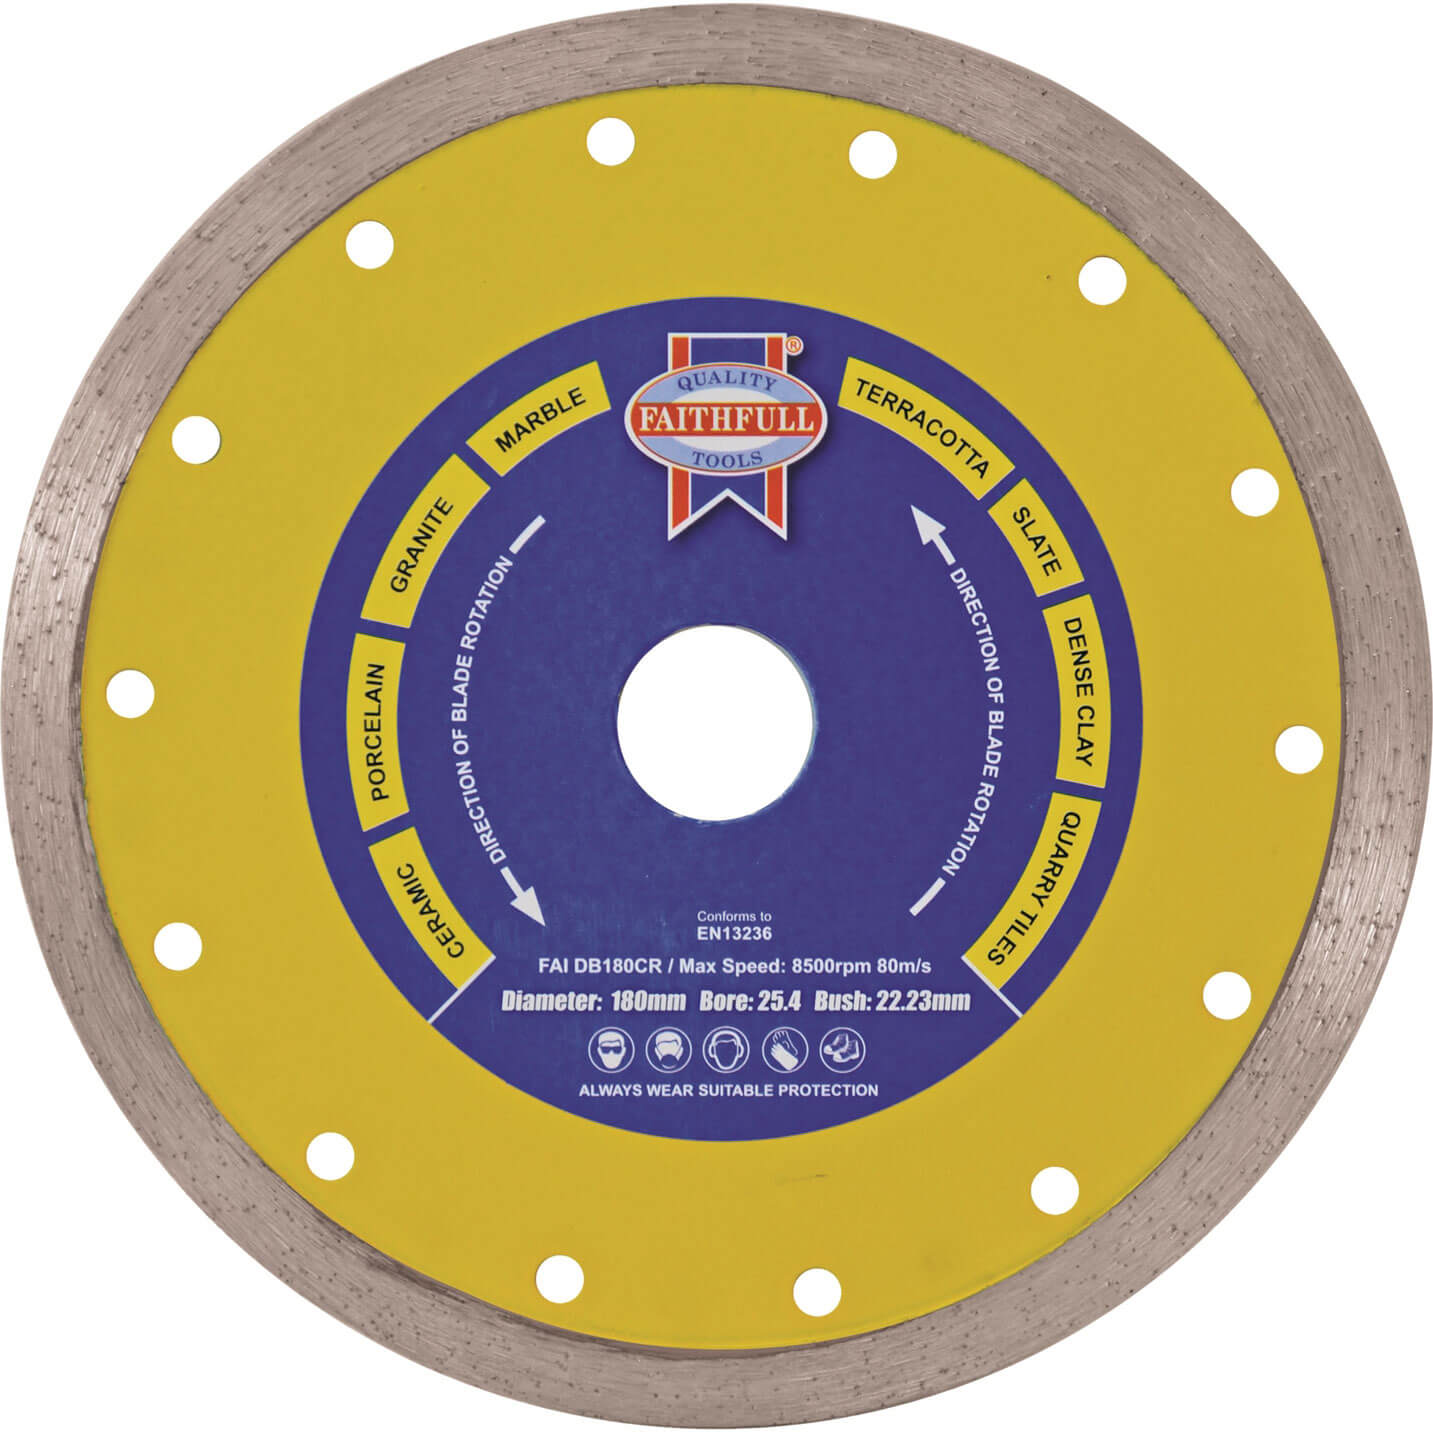 Image of Faithfull Tile Cutting Continuous Rim Diamond Blade 105mm